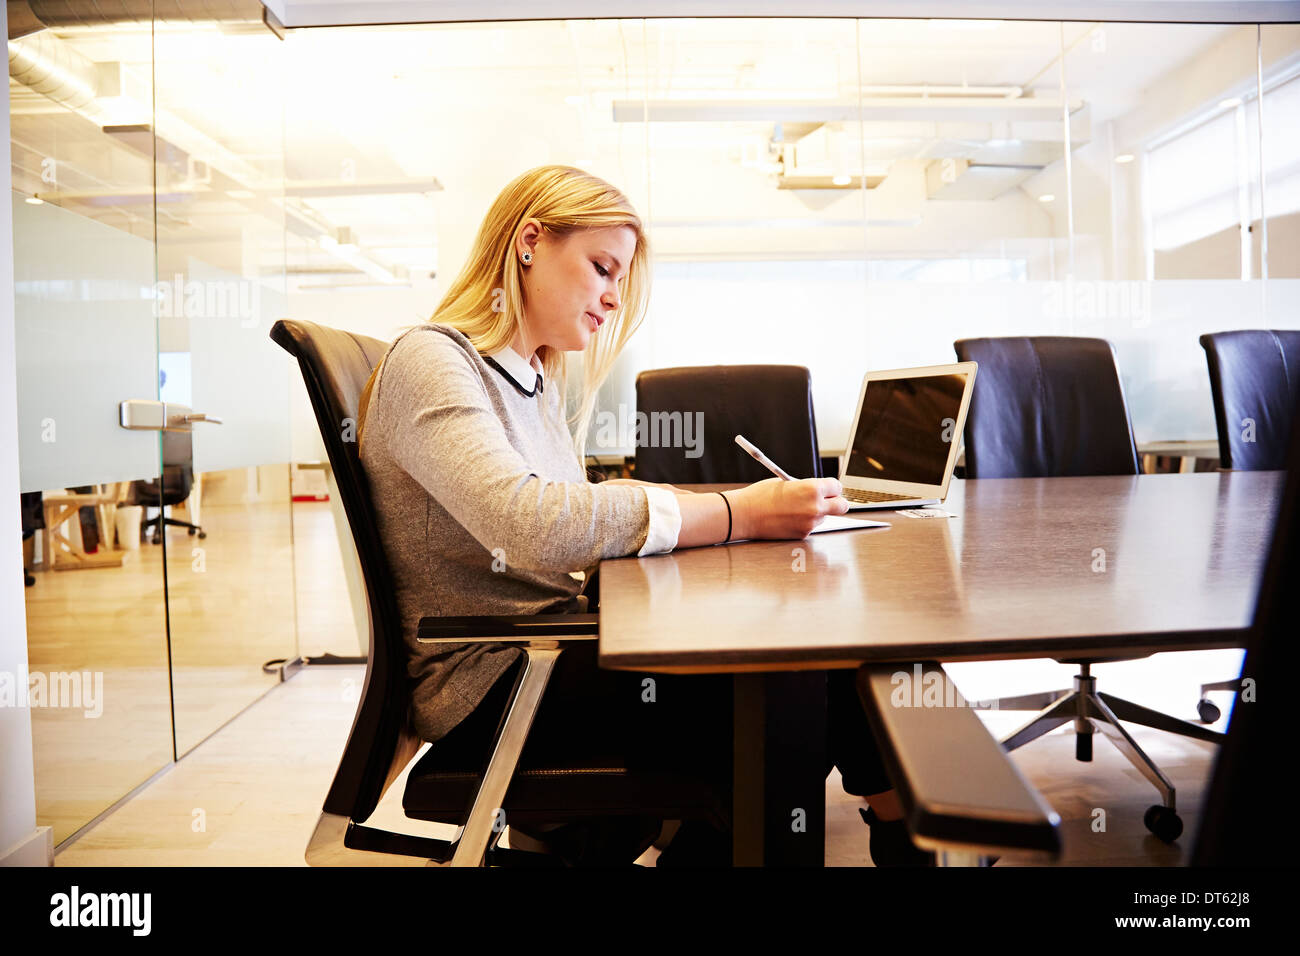 Young woman working at table Photo Stock